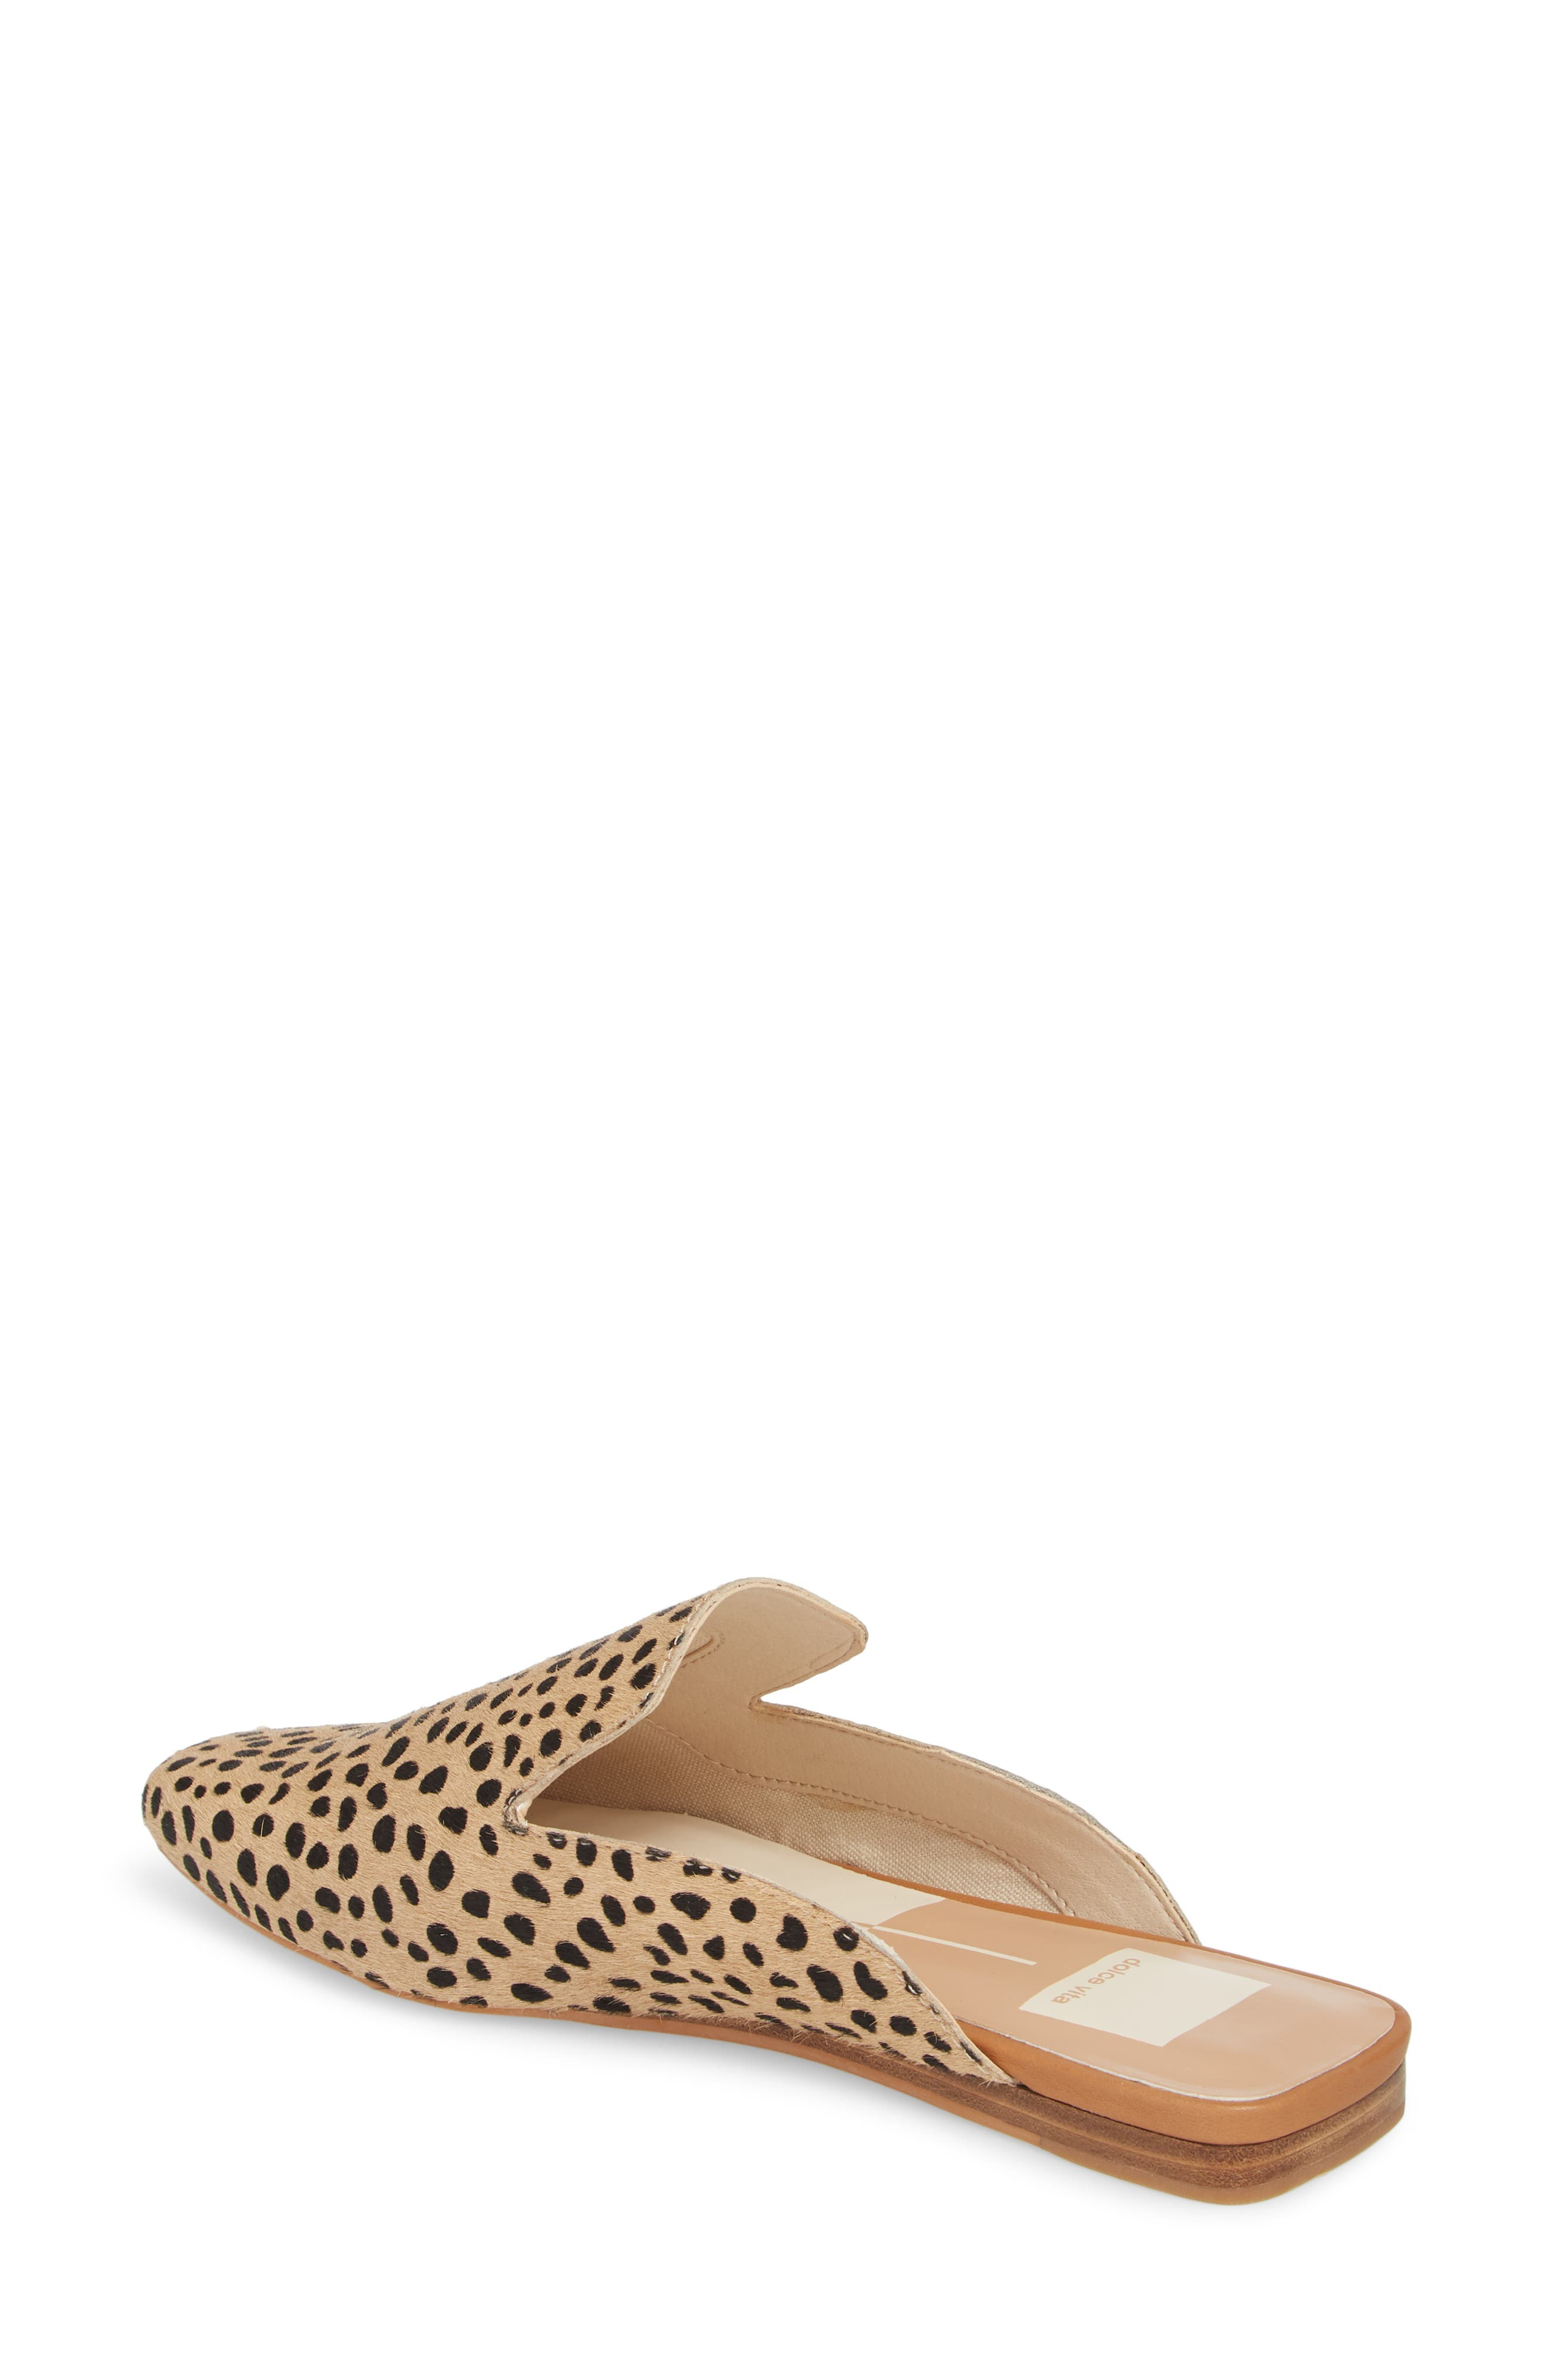 Brie Flat Mule,                             Alternate thumbnail 2, color,                             LEOPARD CALF HAIR